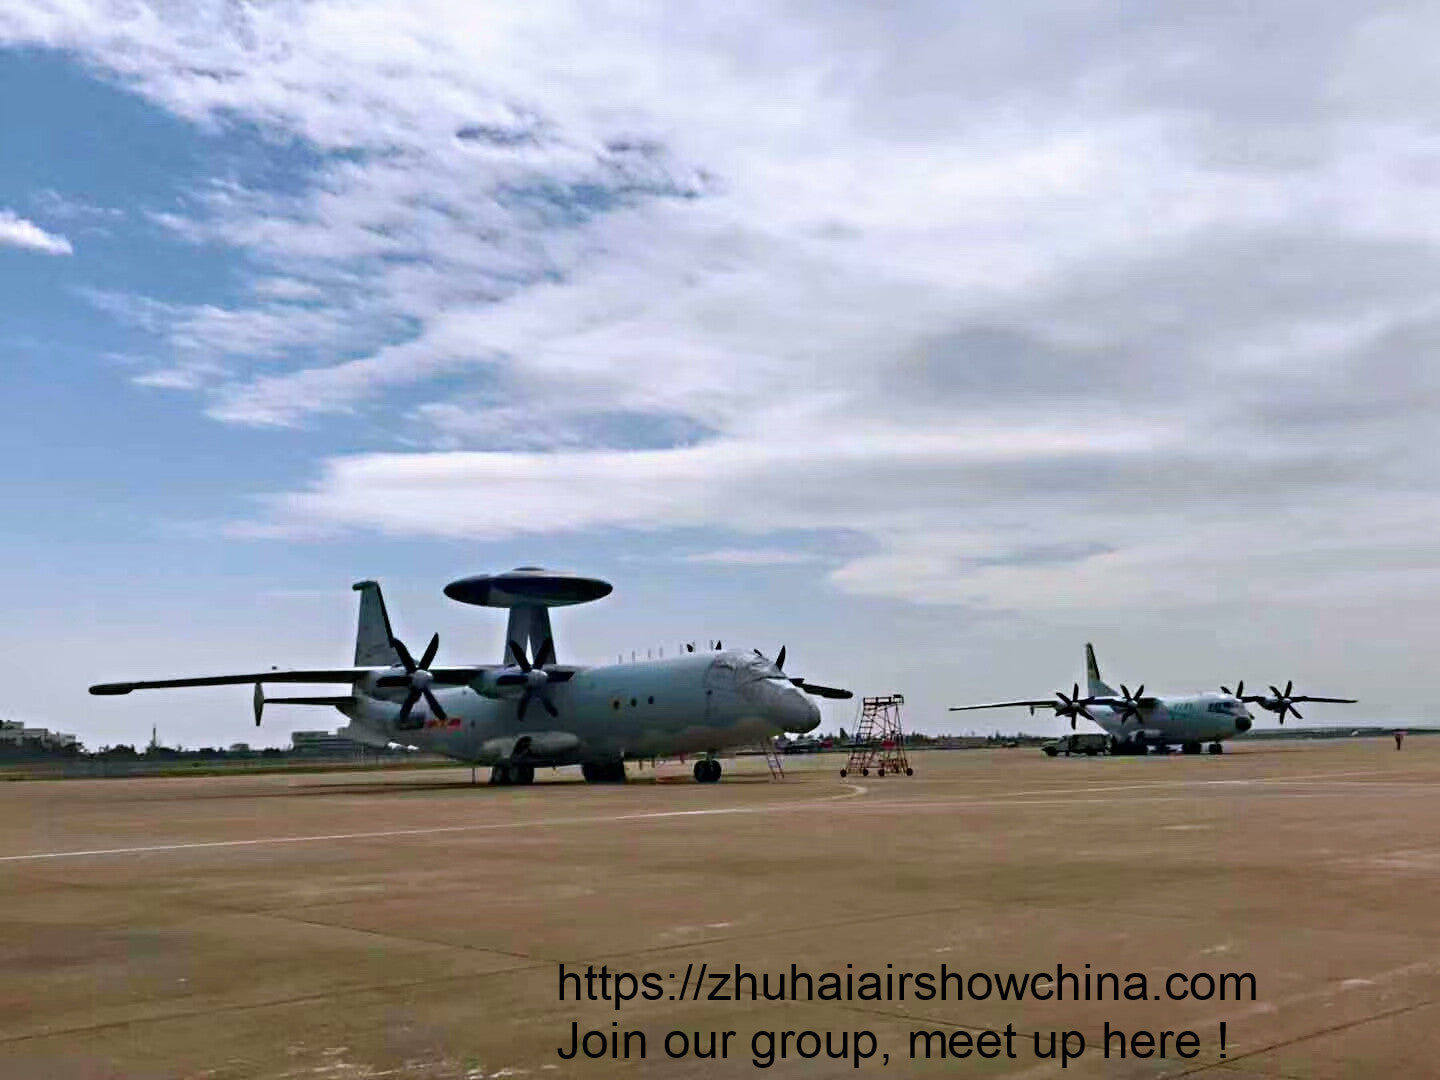 planes1 at airshow china 2018